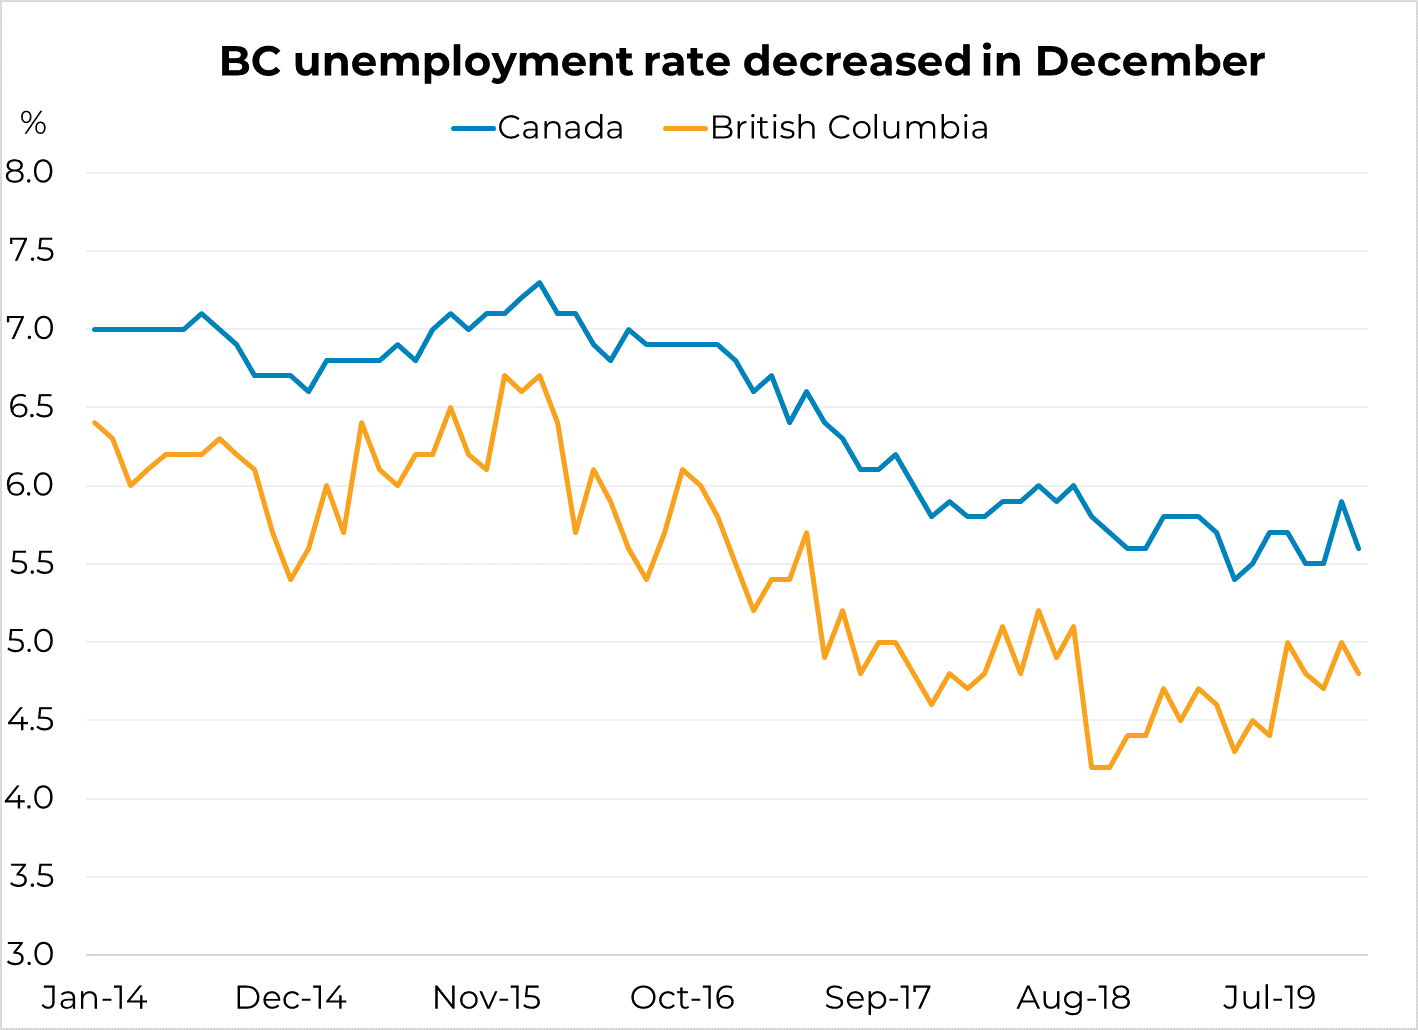 BC Unemployment Rate Decreased in December